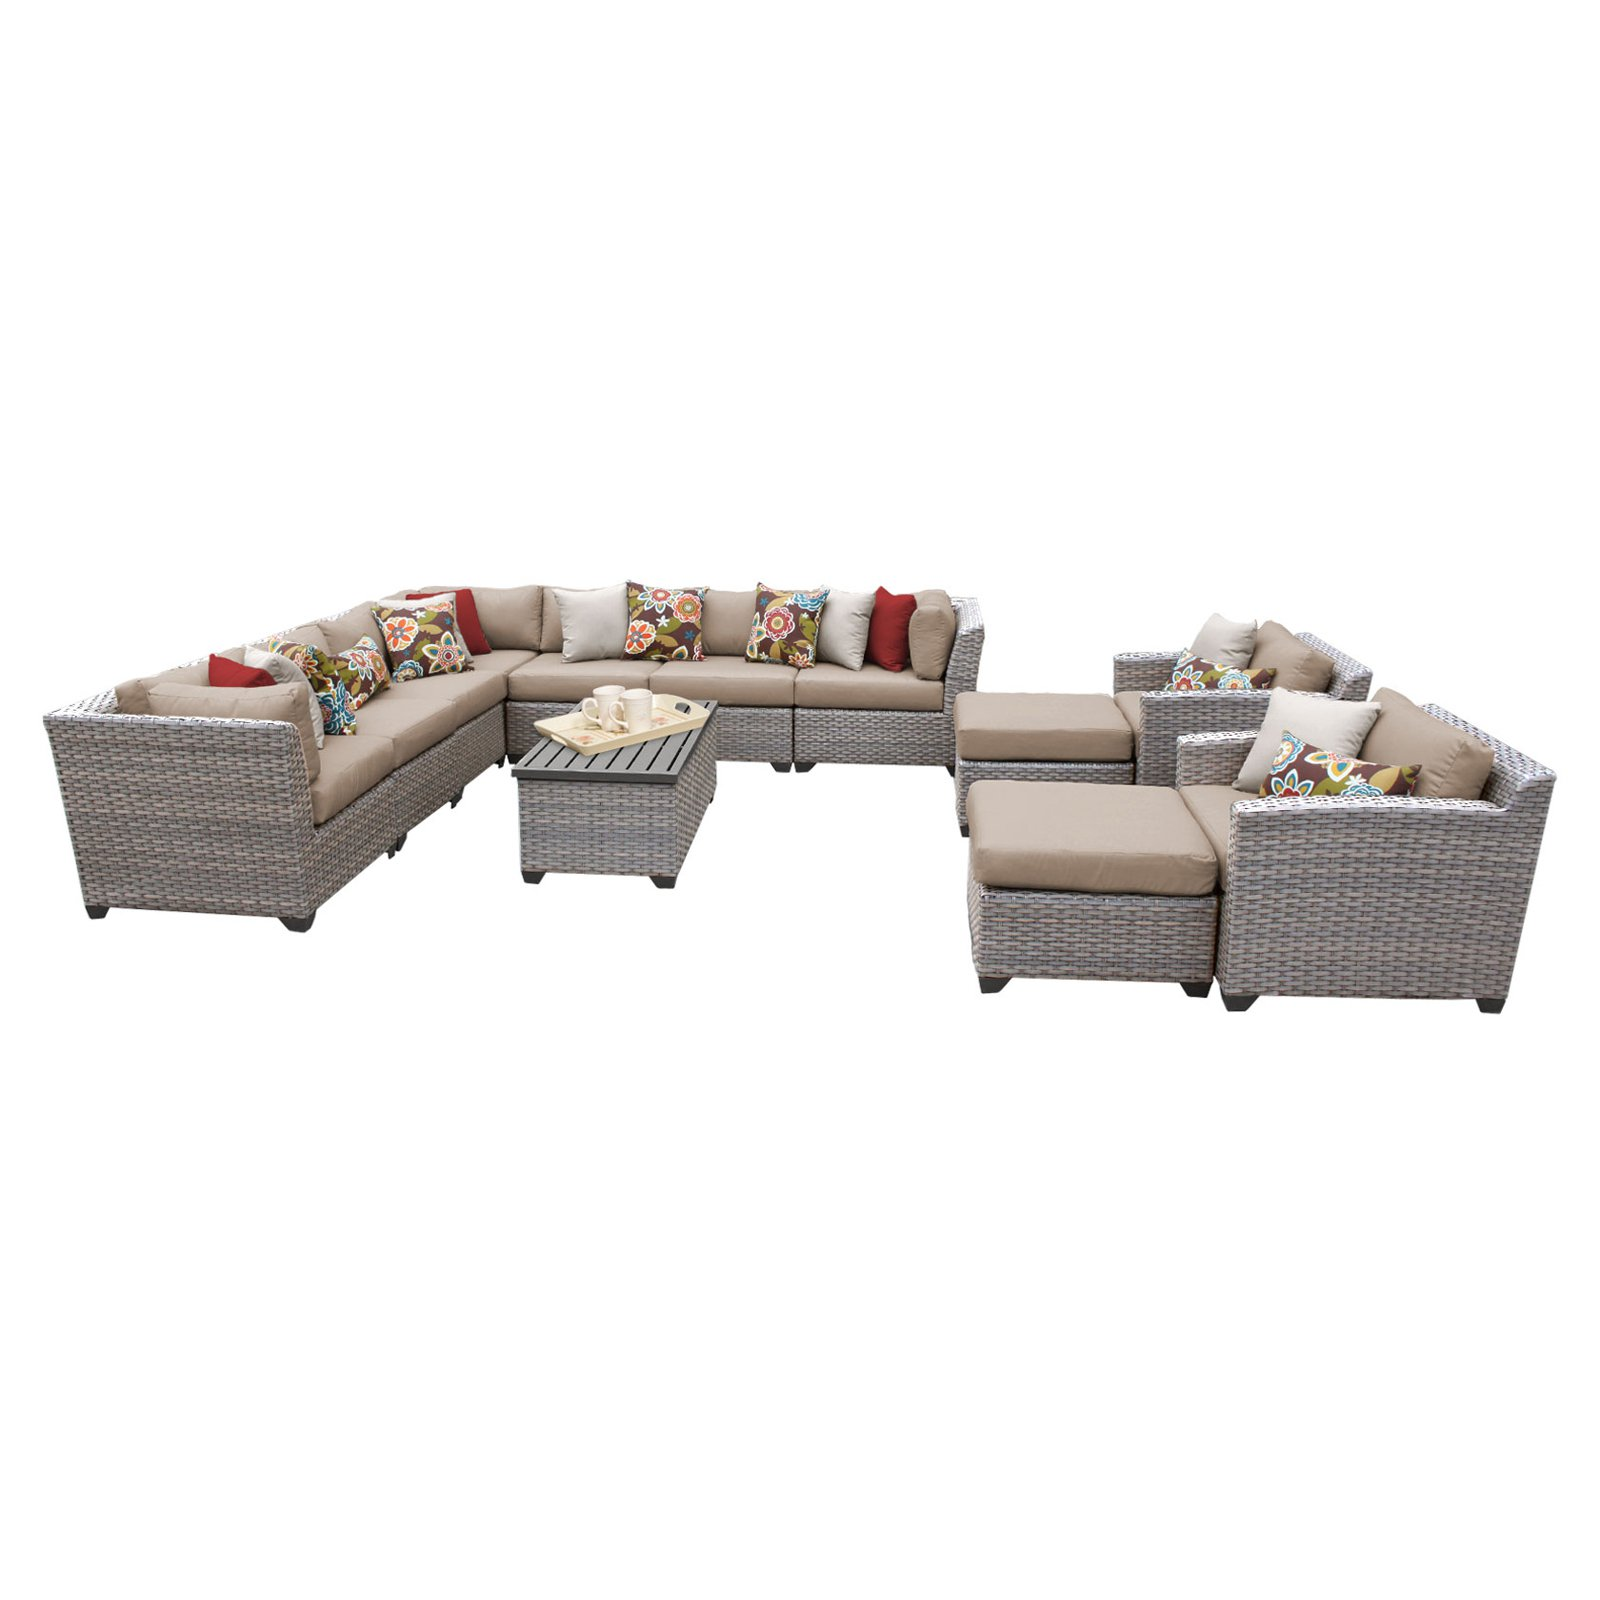 TK Classics Florence Wicker 13 Piece Patio Conversation Set with 2 Sets of Cushion Covers by Delacora